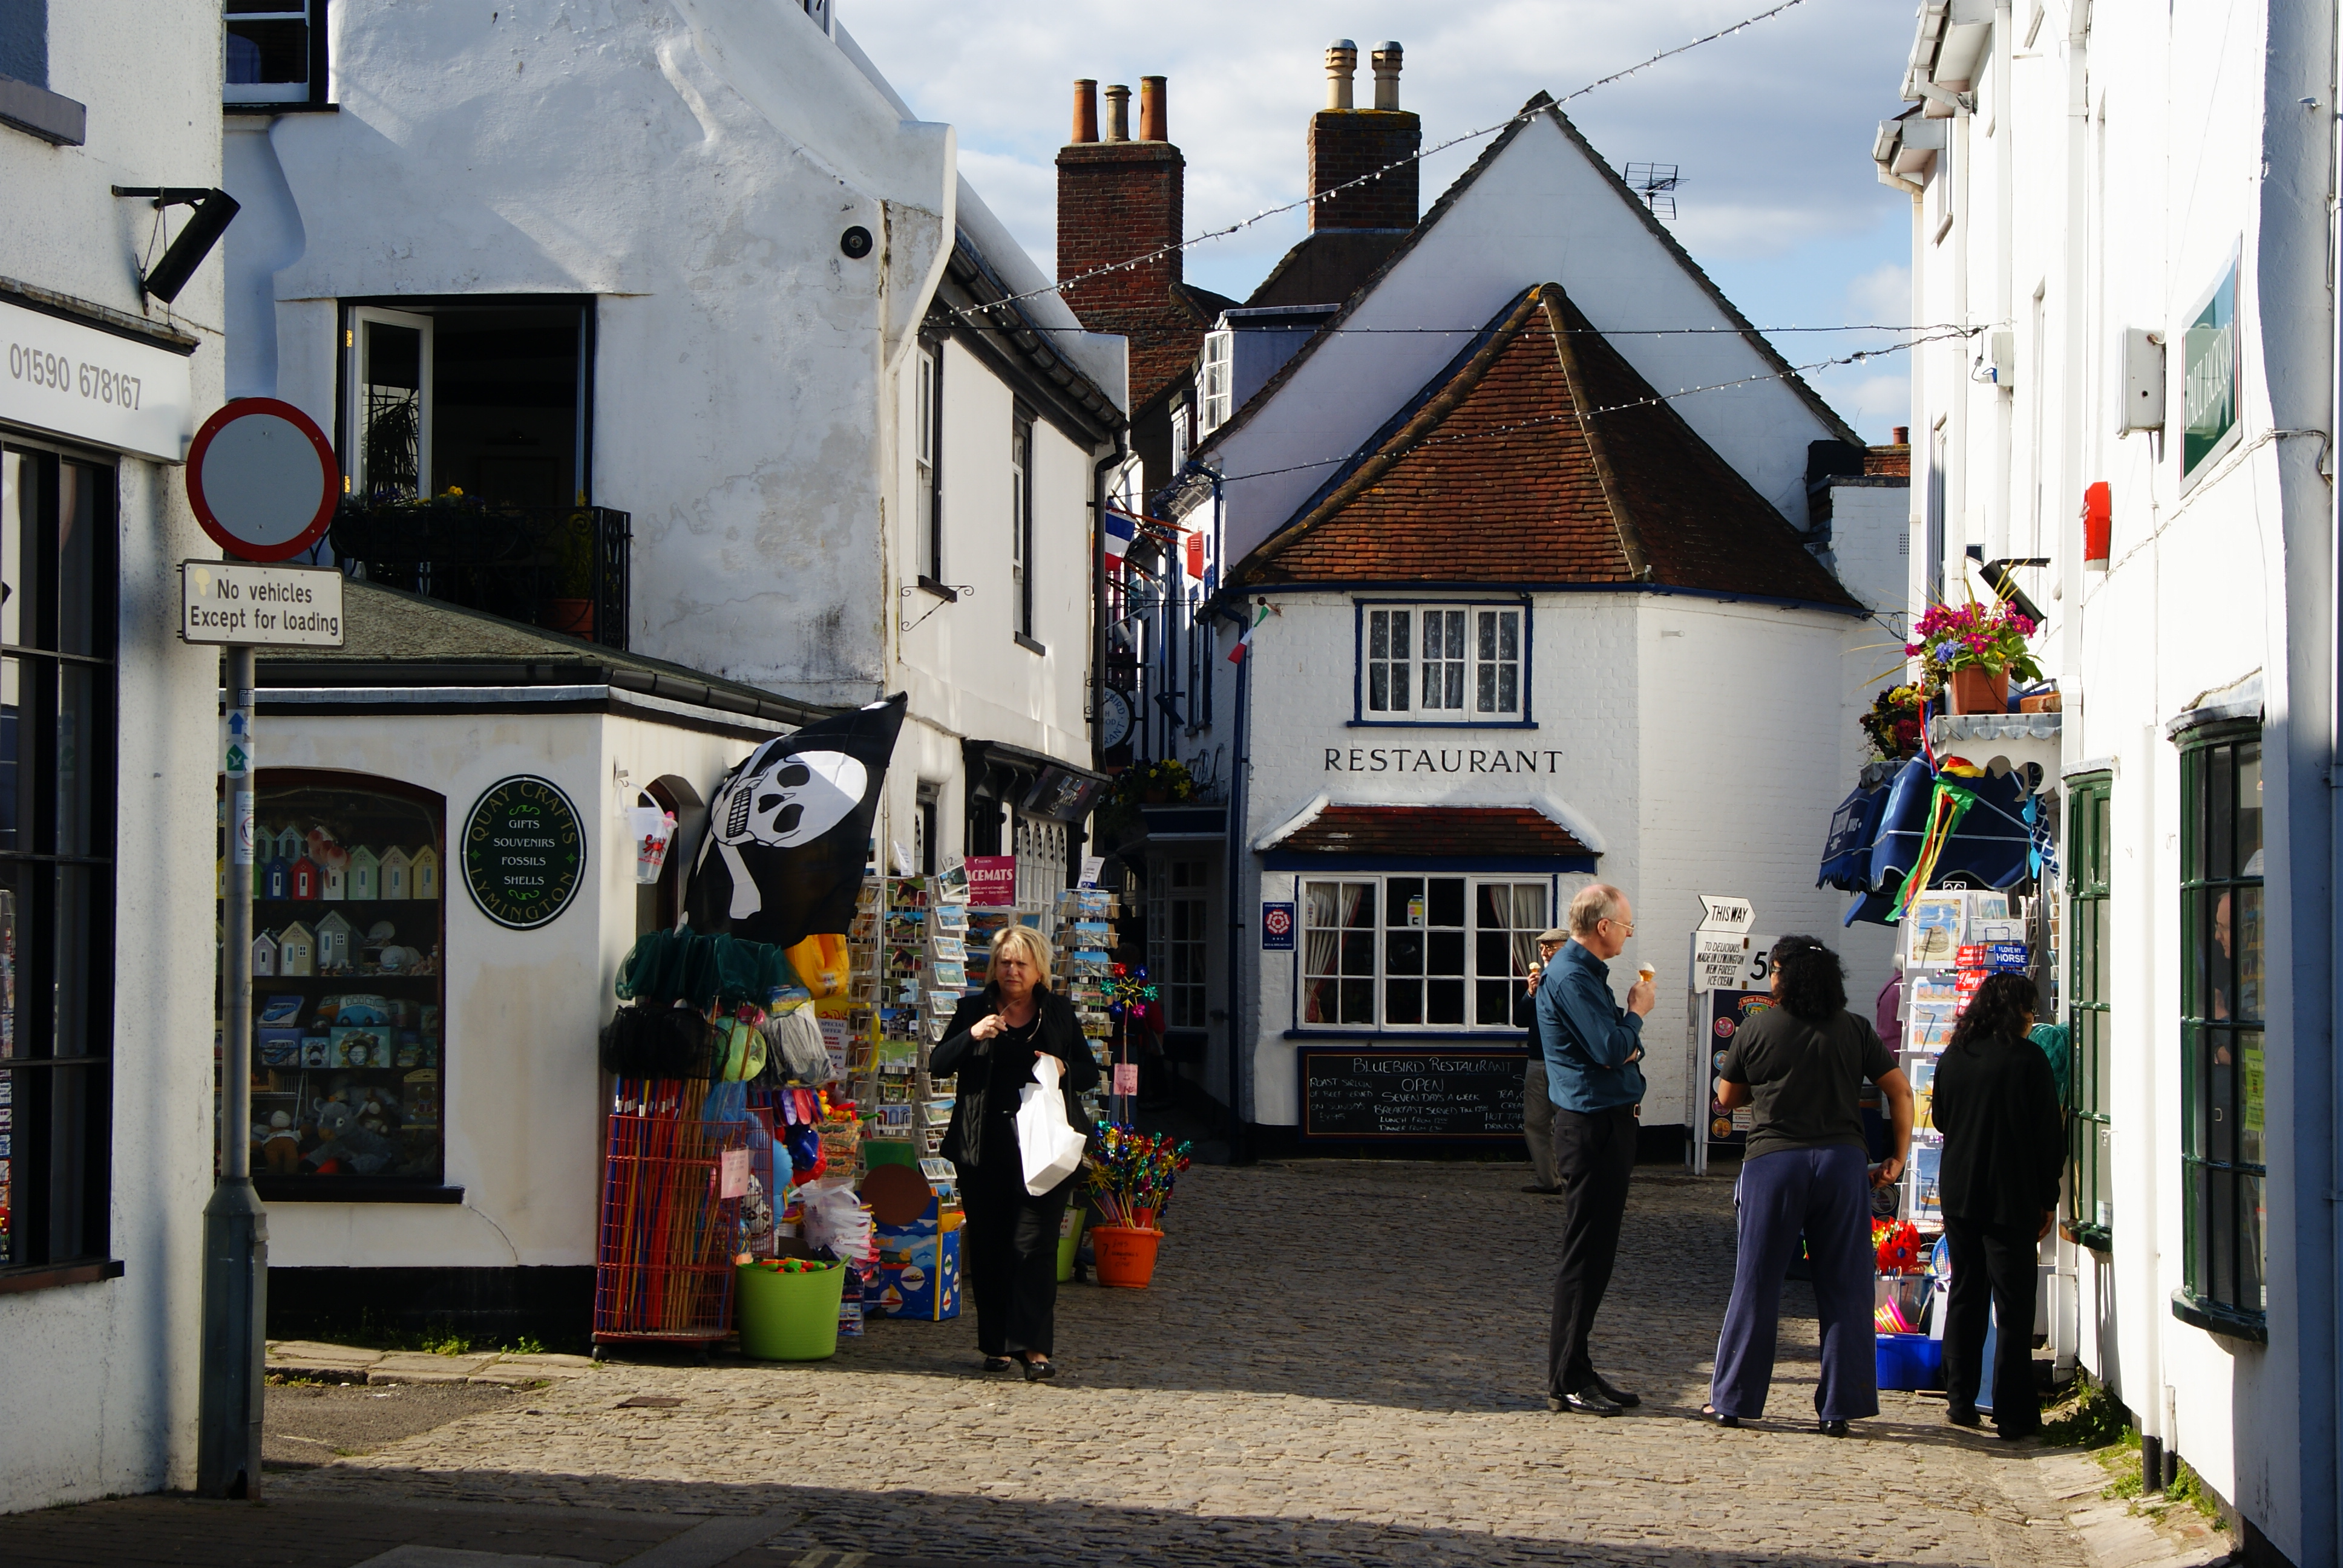 dating lymington Get the latest news in the lymington area from bbc news.